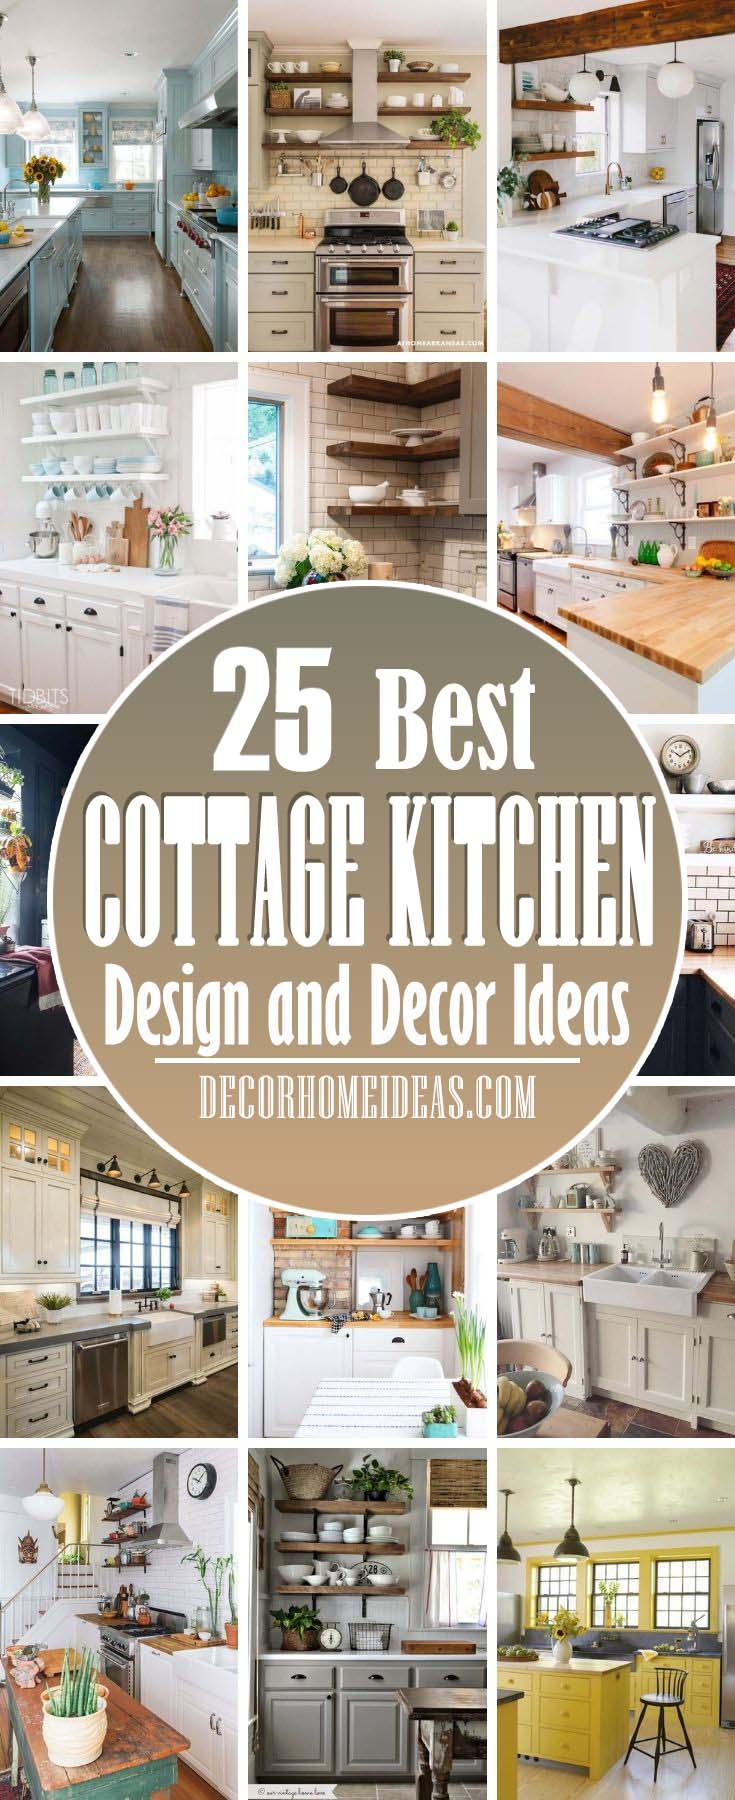 25 Charming Cottage Kitchen Design And Decorating Ideas Decor Home